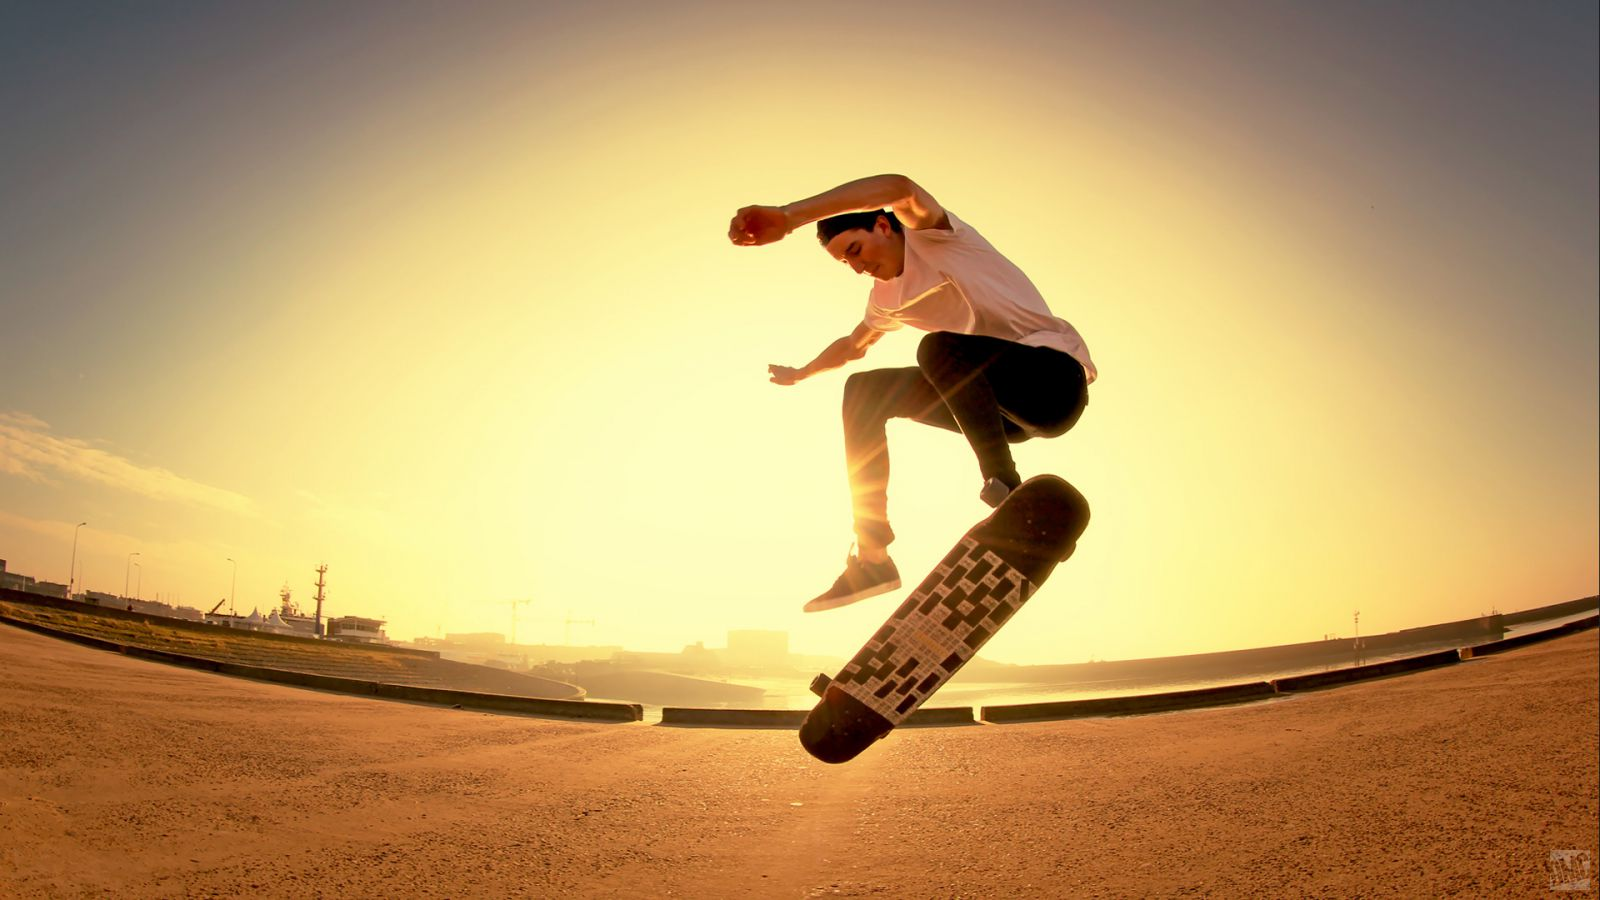 Skate Session - Arto Rohde